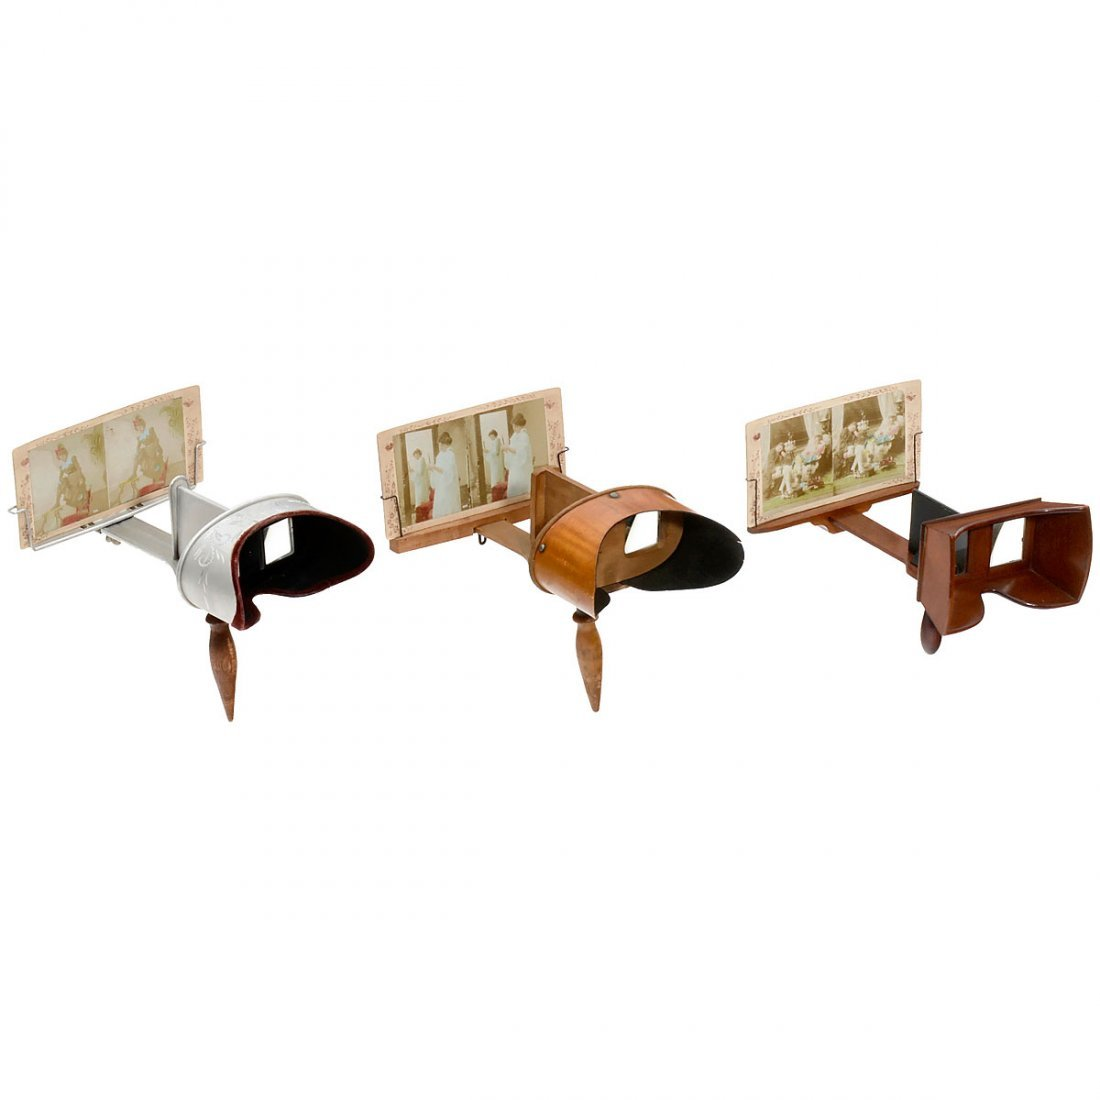 3 Stereo Viewers System Holmes, c. 1900